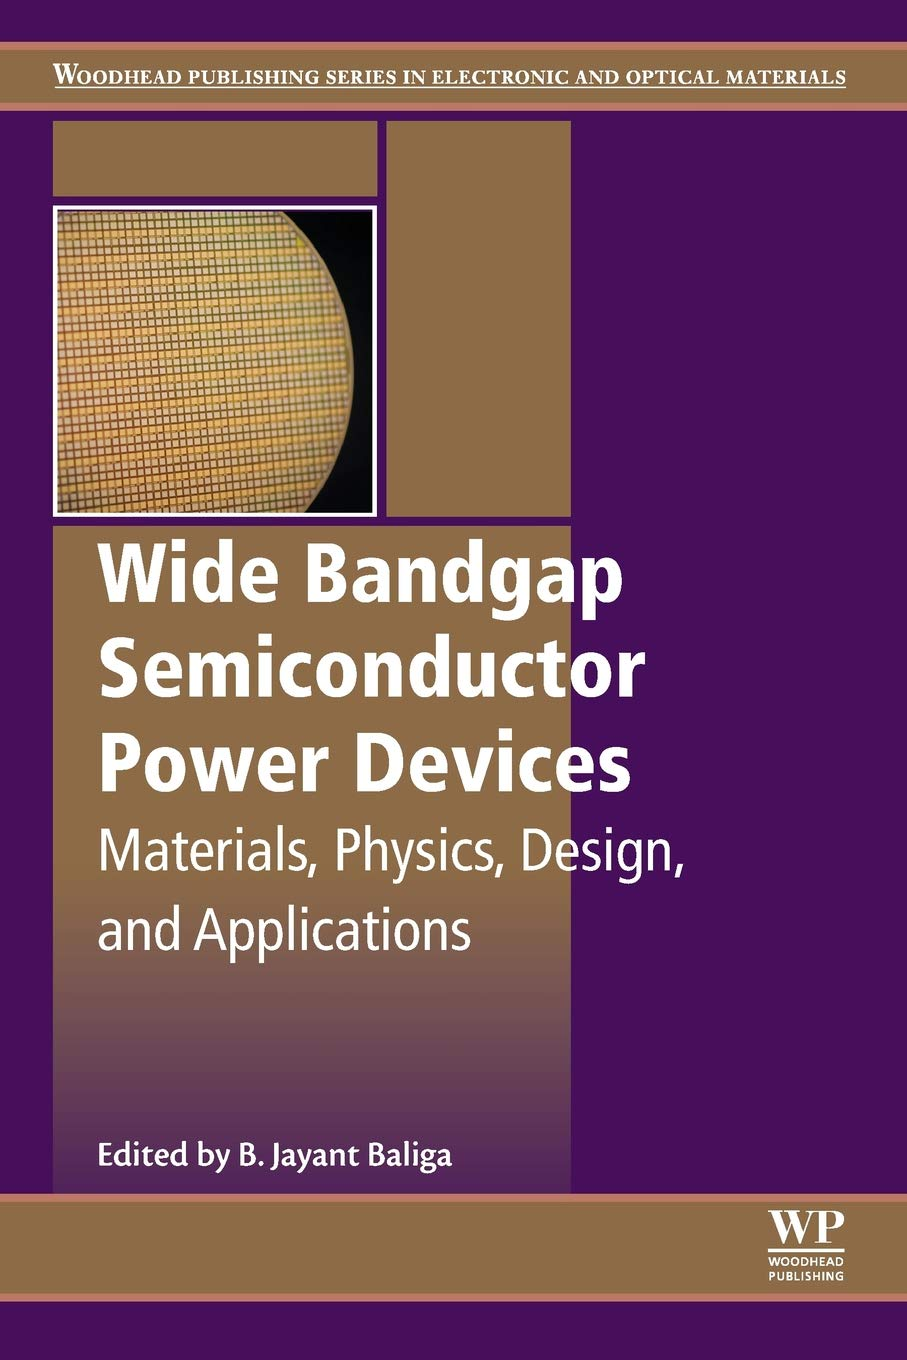 Wide Bandgap Semiconductor Power Devices: Materials, Physics, Design, and  Applications (Woodhead Publishing Series in Electronic and Optical